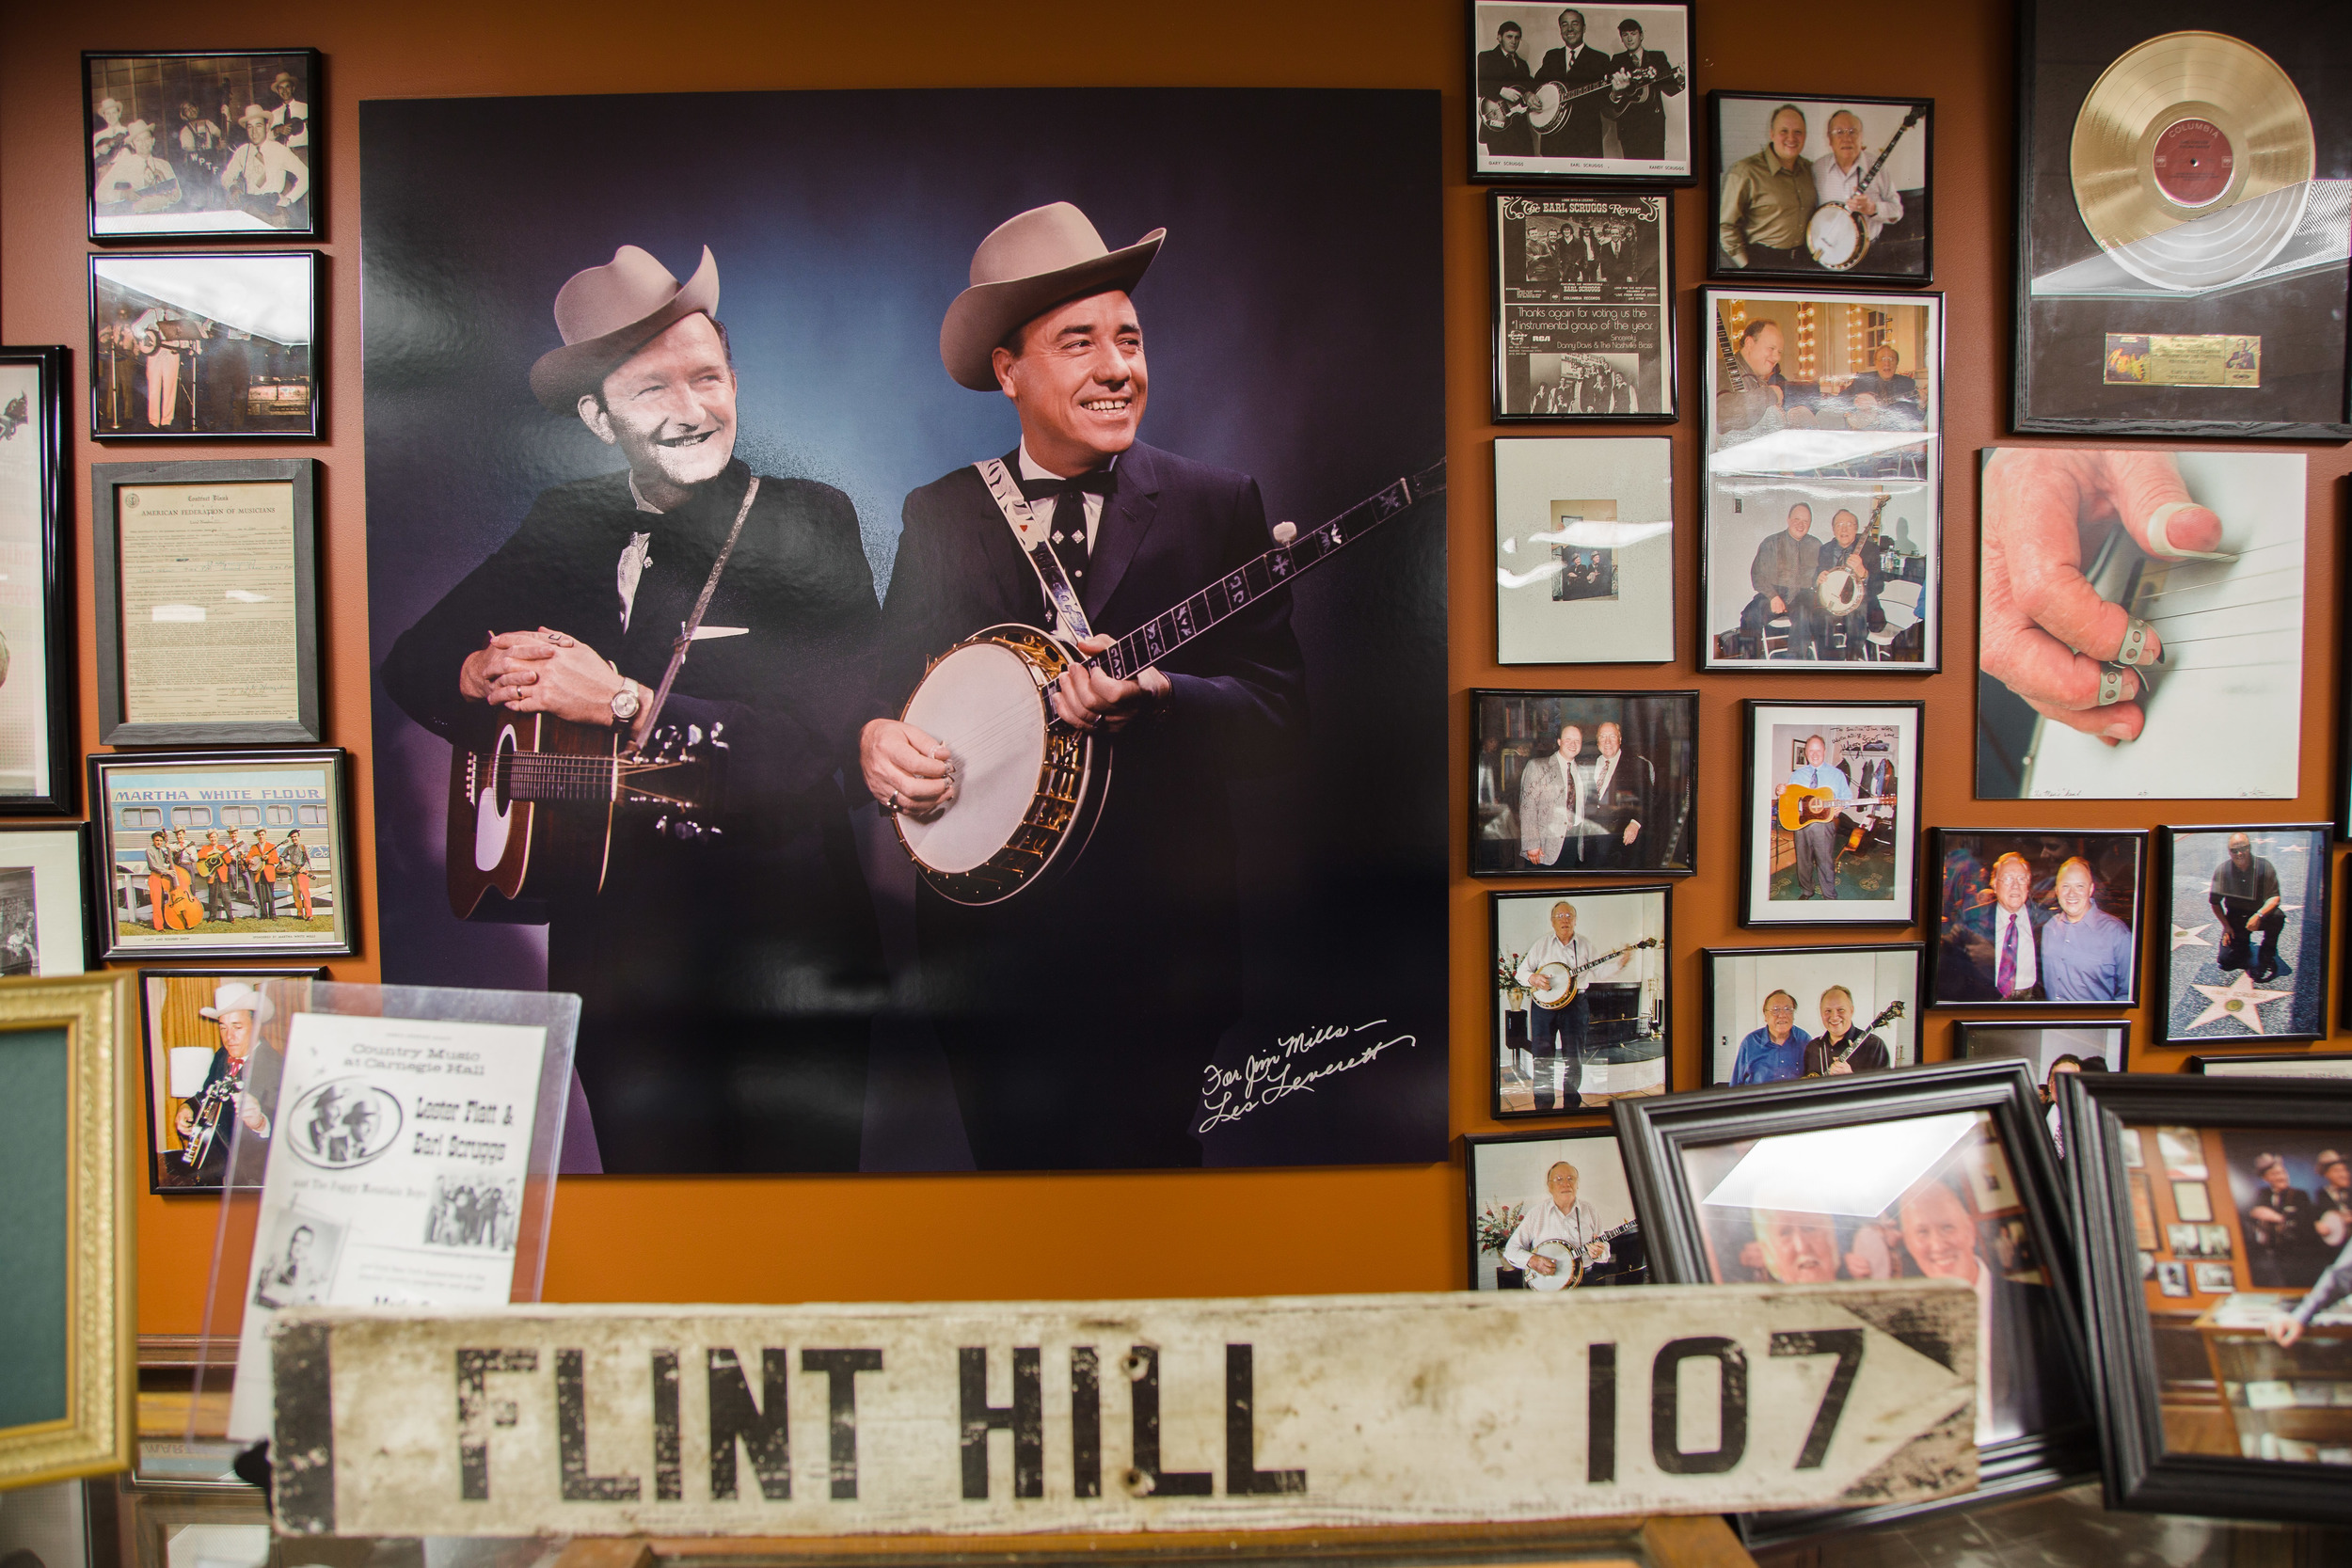 The centerpiece of Mills memorabilia collection is a portrait of Lester Flatt and Earl Scruggs by Nashville photographer Les Leverett, tucked behind a Flint Hill sign from the town in which Scruggs was raised.